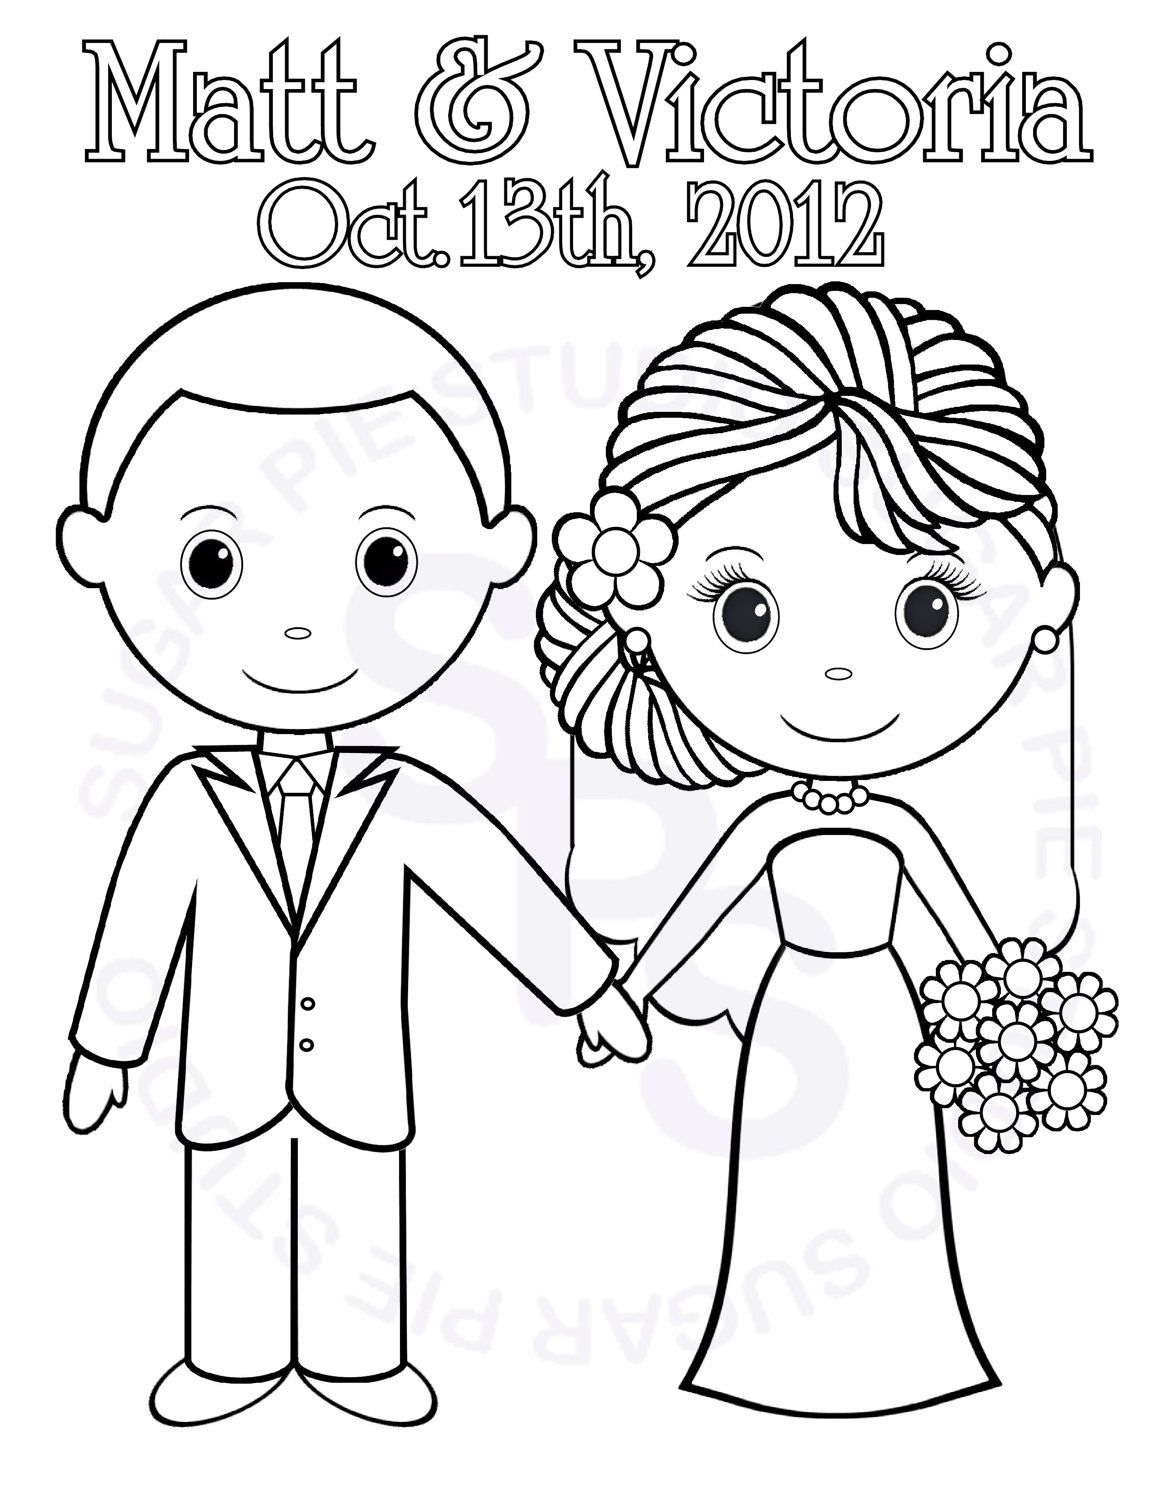 Adult Best Kids Wedding Coloring Pages Gallery Images best 1000 images about kids wedding bags on pinterest activities activity books and coloring pages gallery images